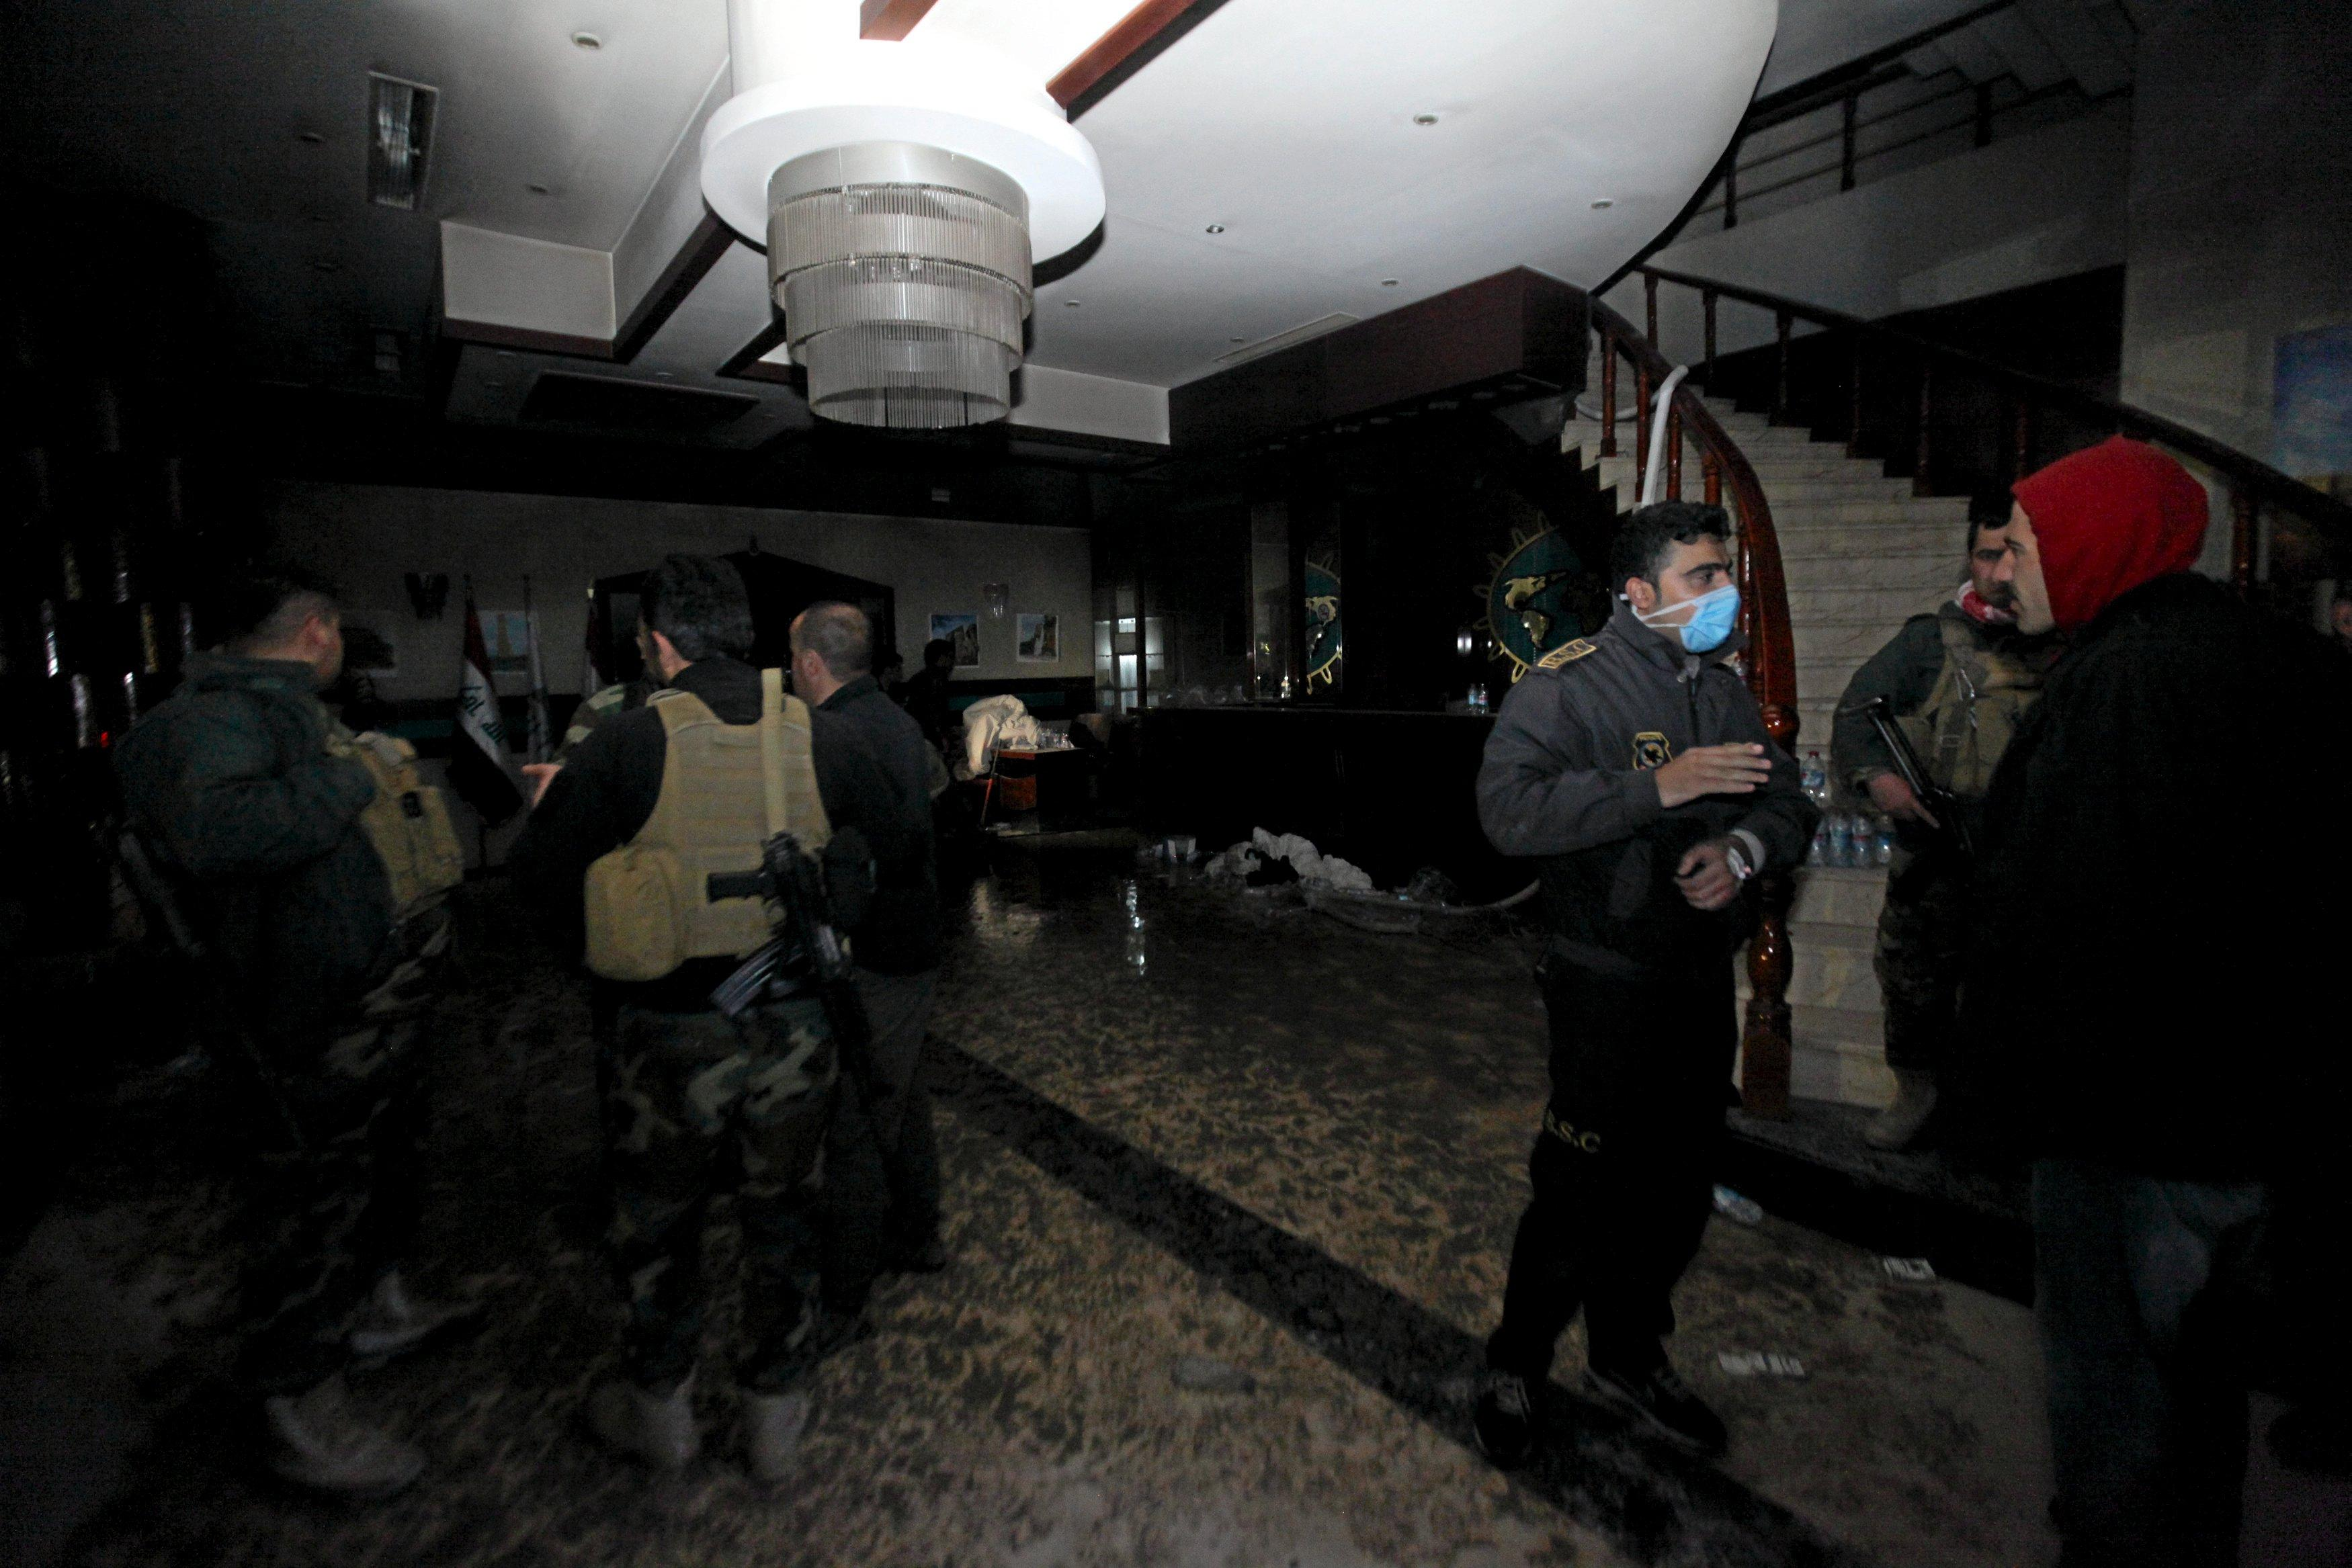 Iraqi authorities at the lobby of the Capitol Hotel in Irbil. REUTERS